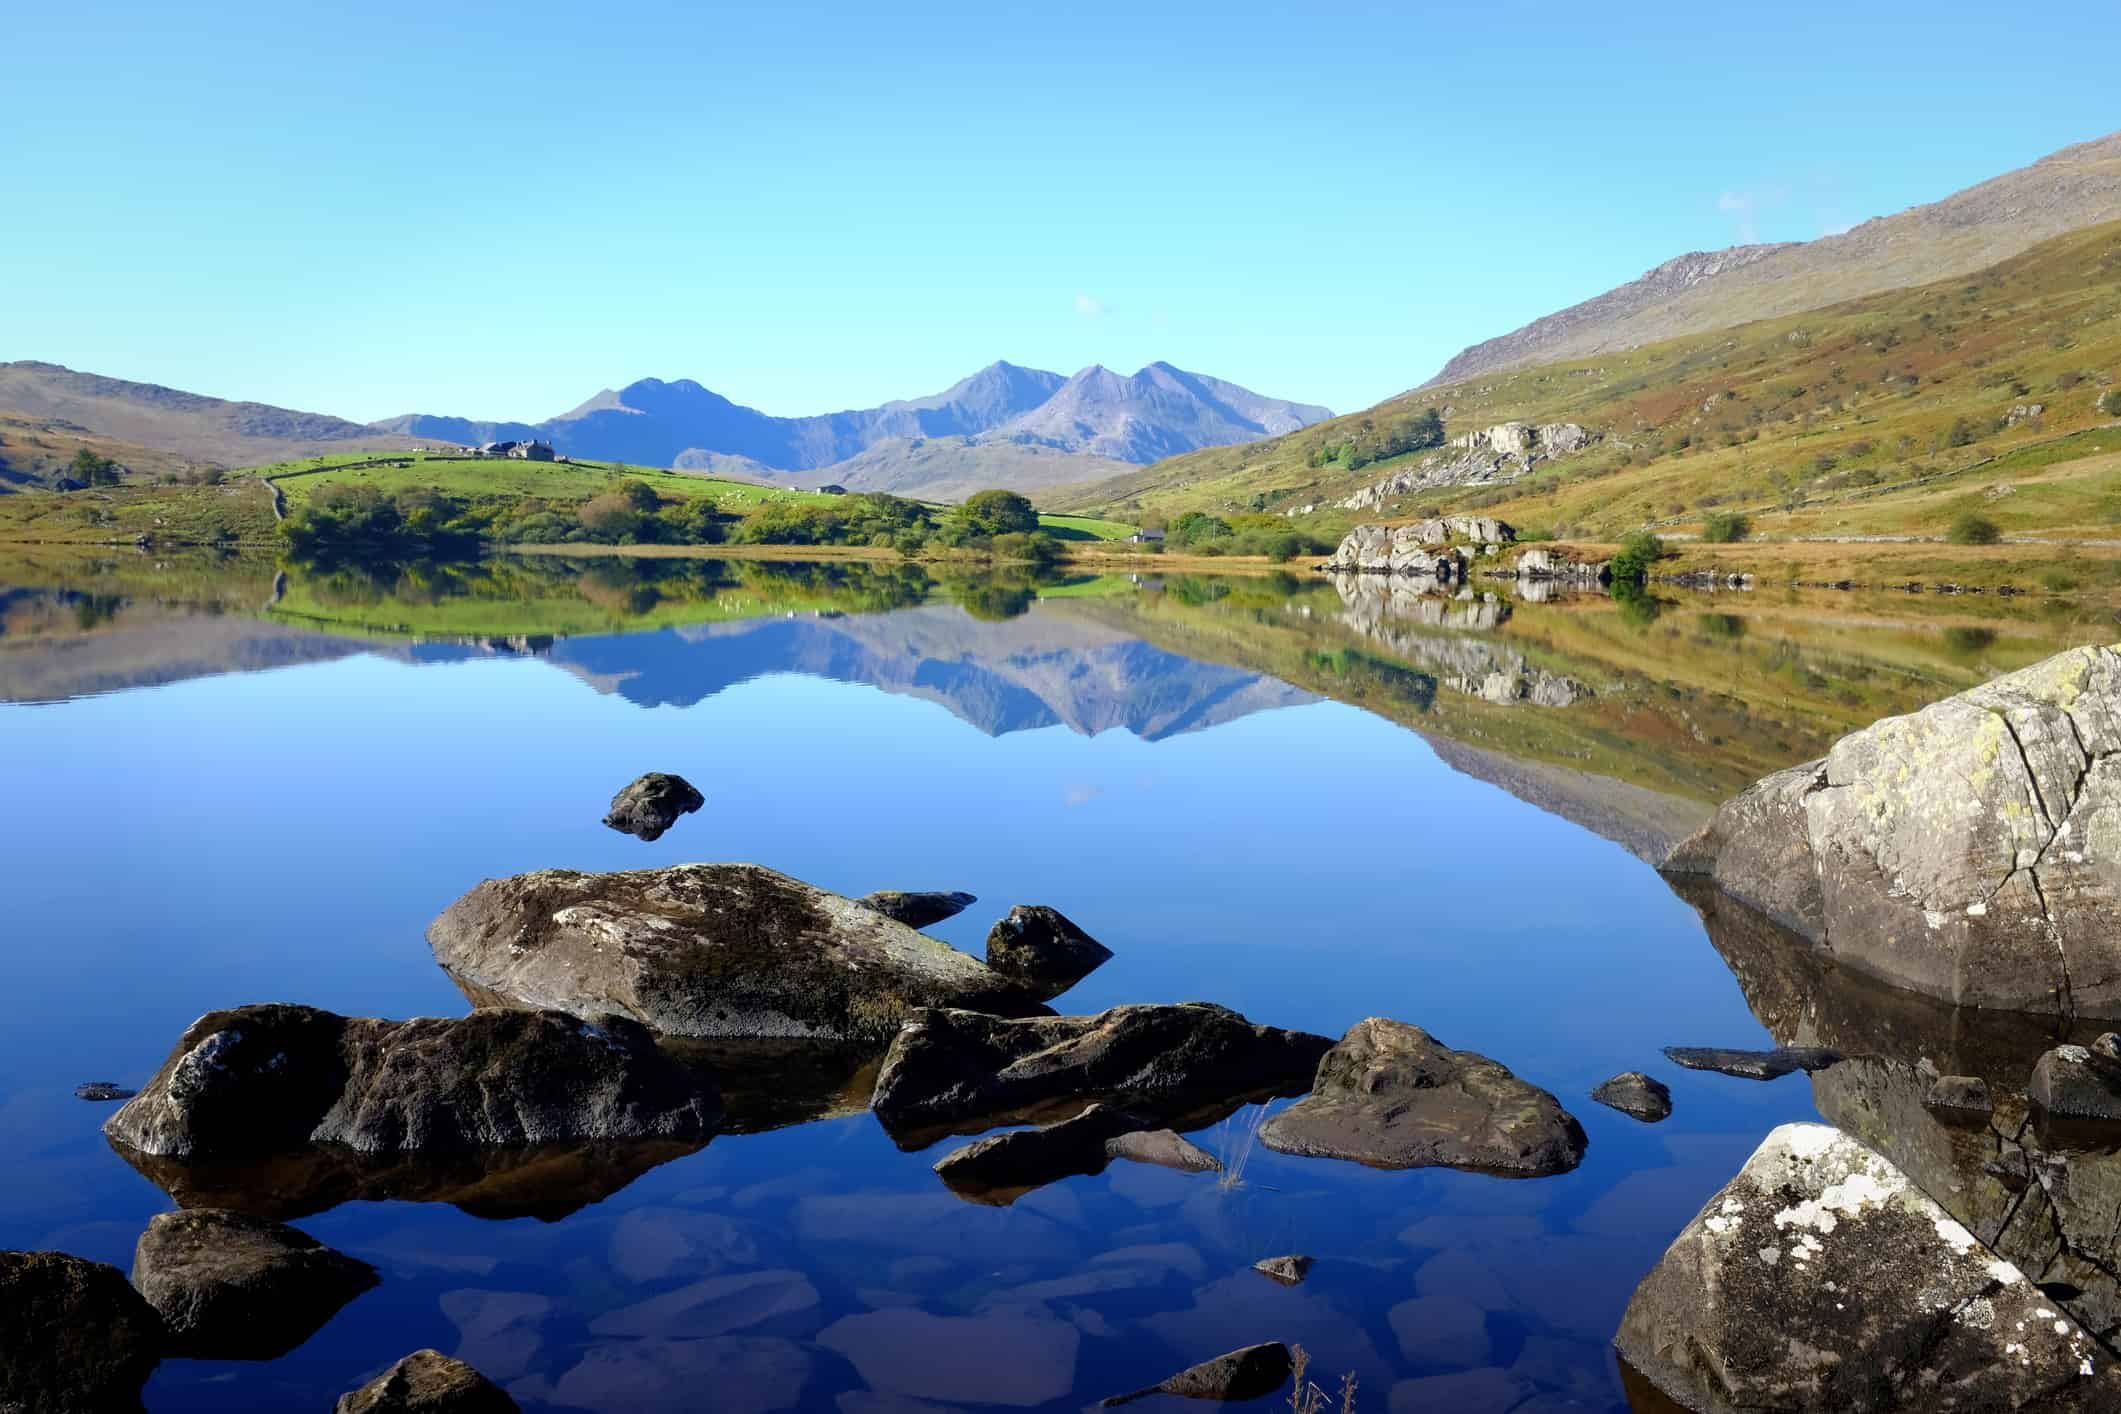 View of the mountains in Snowdonia, Wales, UK